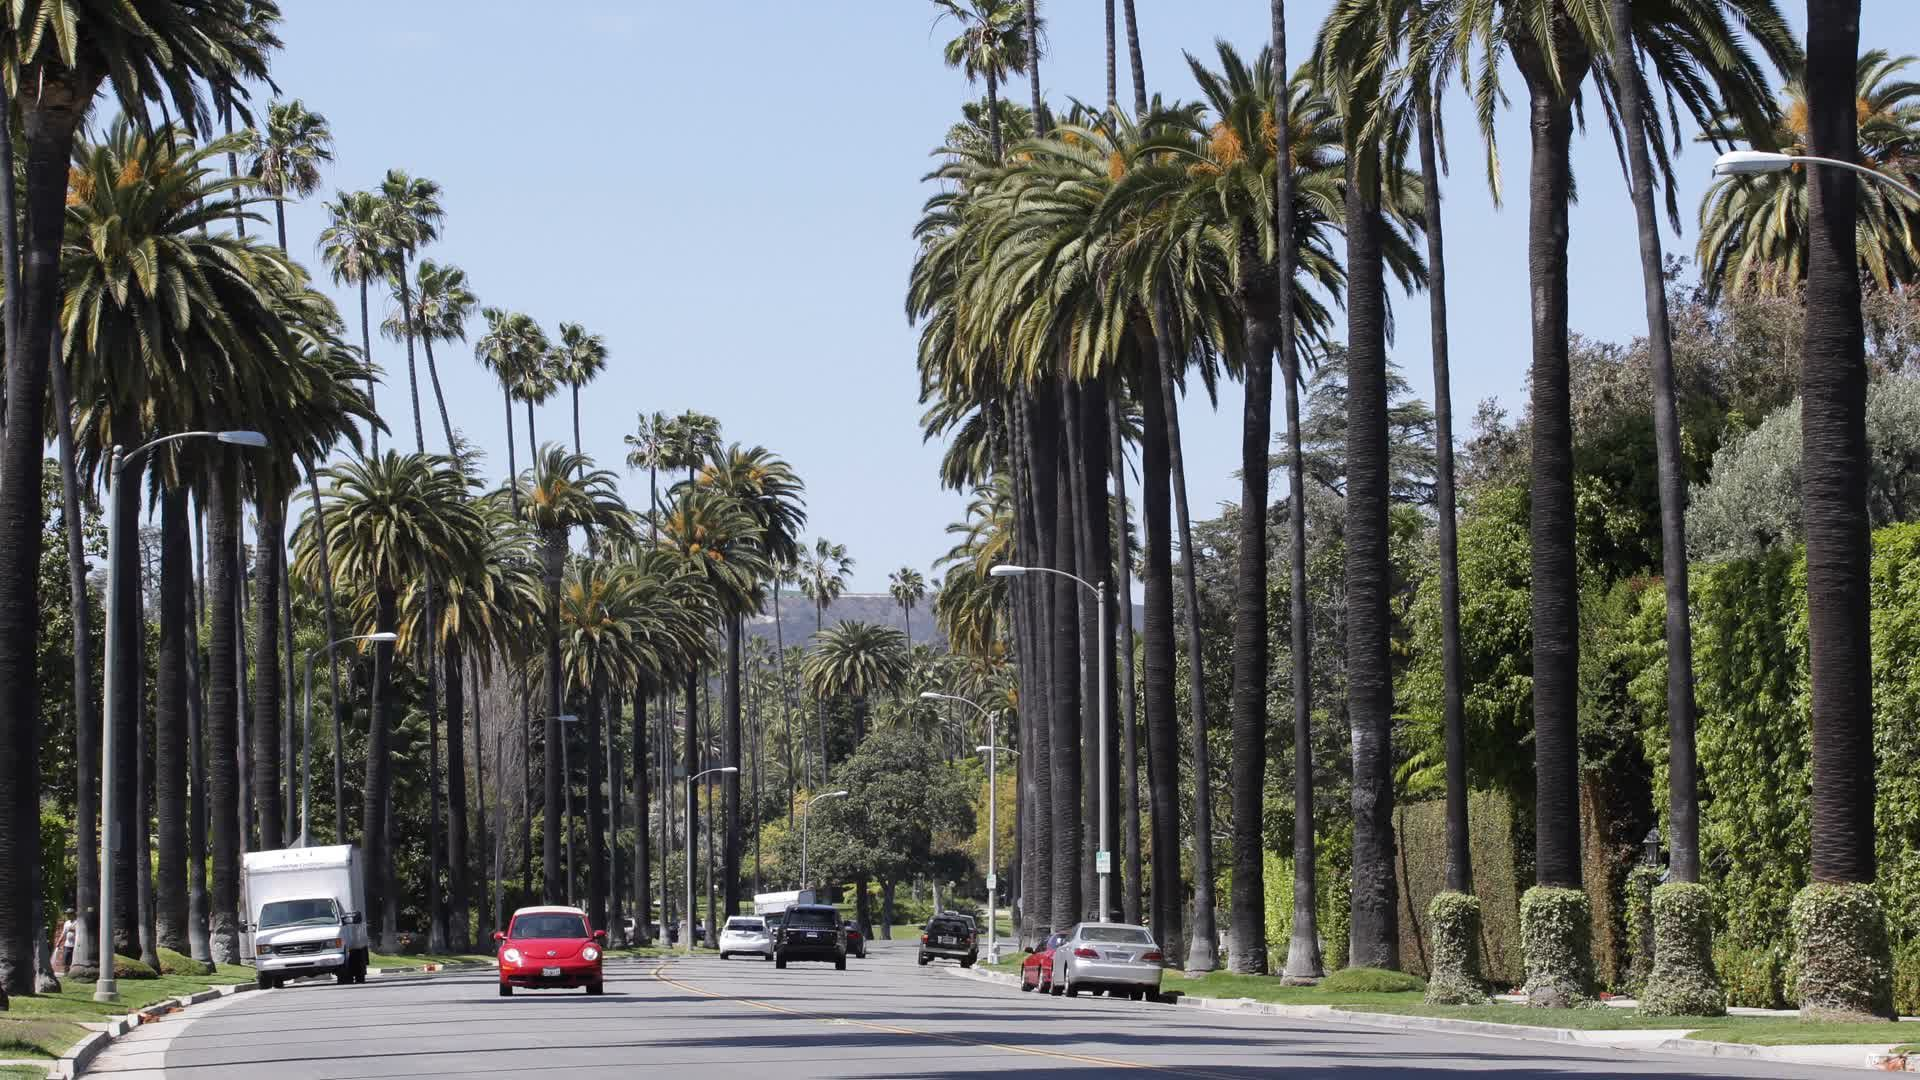 Palm Trees Car Traffic In Beverly Hills Near Sunset Boulevard Los Angeles Usa Stock Footage Traffic Beverly Hills Pa Palm Trees Stock Footage Beverly Hills